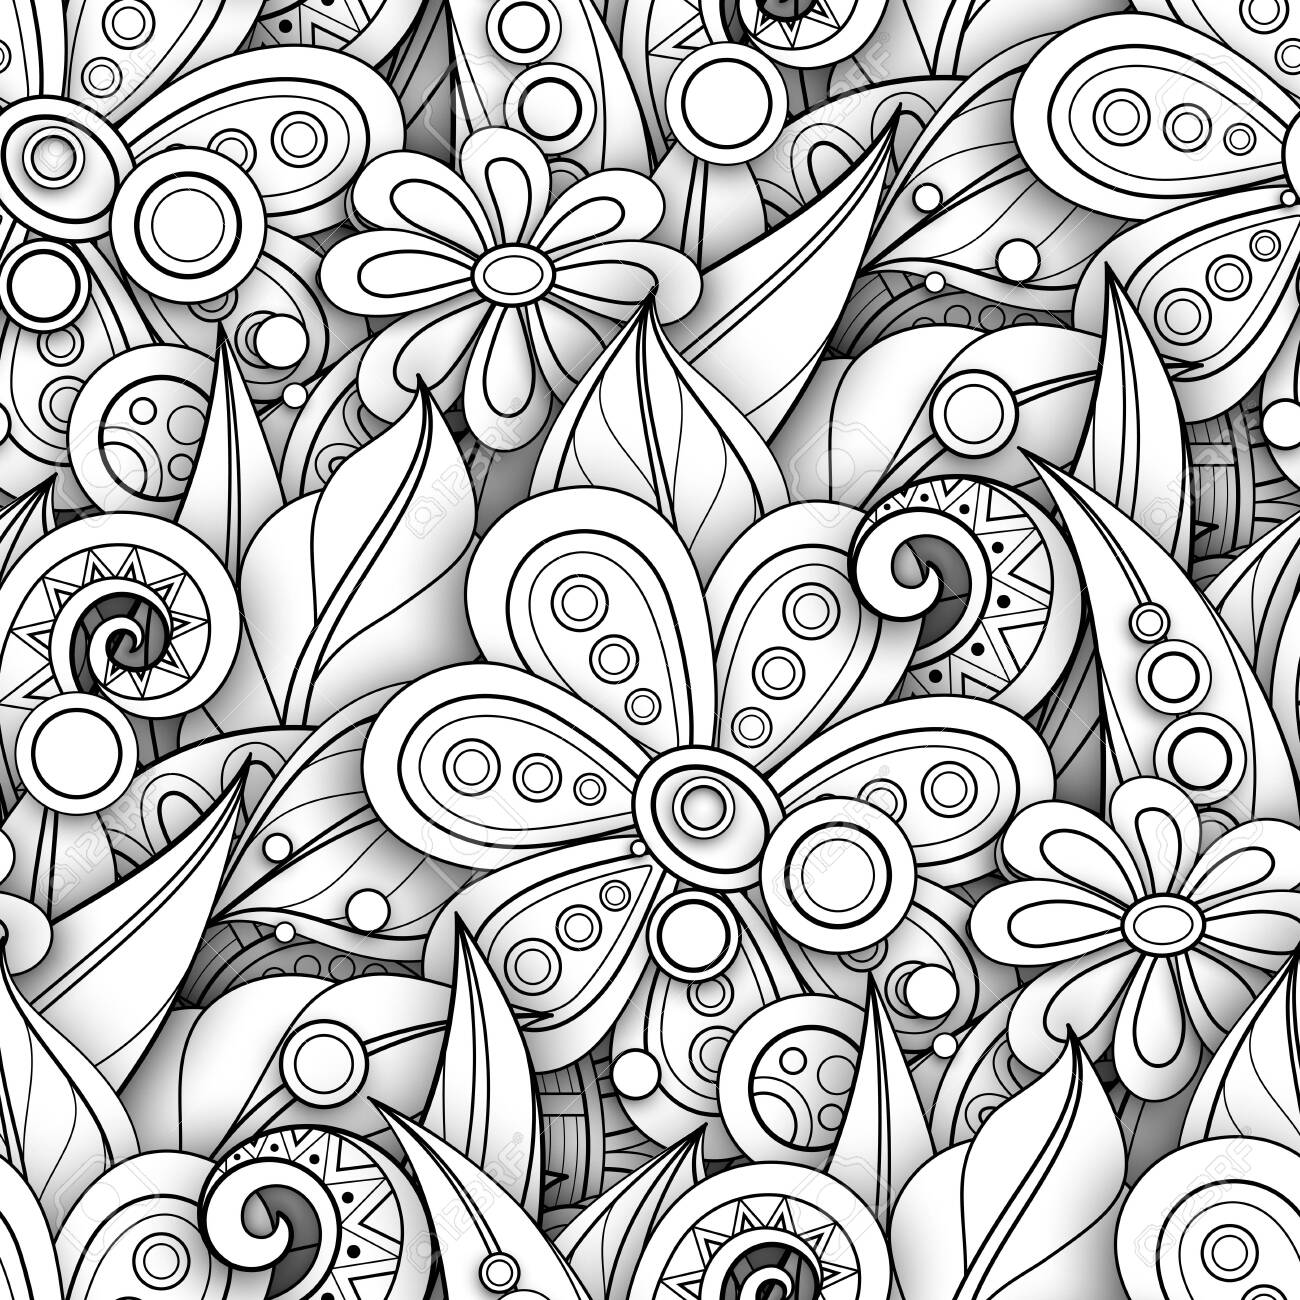 Monochrome Seamless Pattern with Floral Motifs. Endless Texture with Flowers, Leaves etc. Natural Background in Doodle Line Style. Coloring Book Page. Vector 3d Contour Illustration. Abstract Art - 132034108